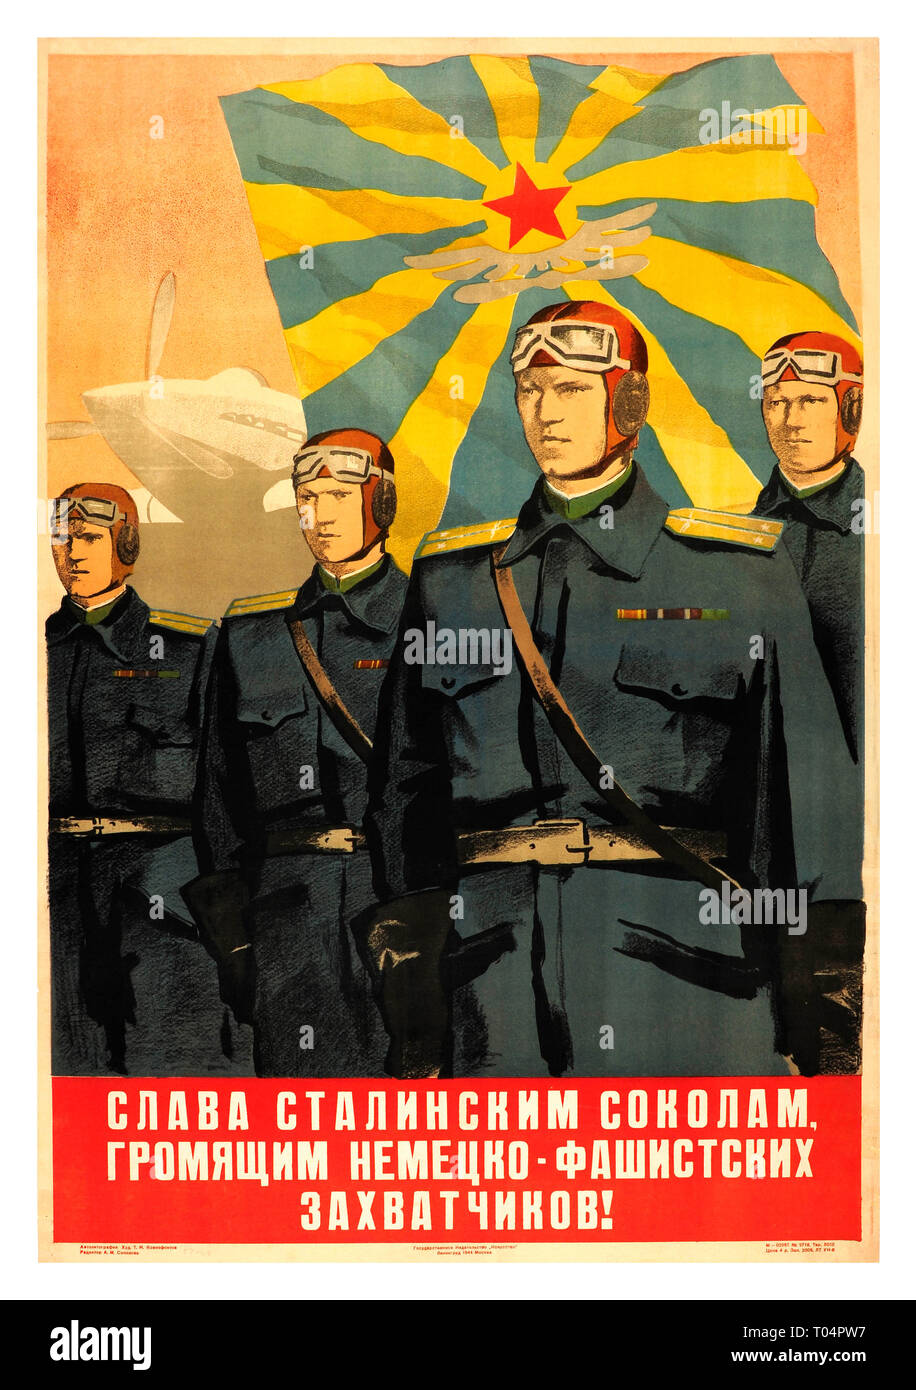 WWII 1940's Soviet Air Force Propaganda Poster: Stalin's Hawks Smash German Invaders by T. Ksenofontov Vintage Soviet World War Two propaganda poster featuring four Soviet Air Force pilots in military uniform standing in front of a plane and an air force flag in blue and yellow with a red Soviet star in the centre, 'Glory to the Hawks of Stalin Smashing German Fascist Invaders' USSR Soviet Russian World War II Propaganda poster - Stock Image